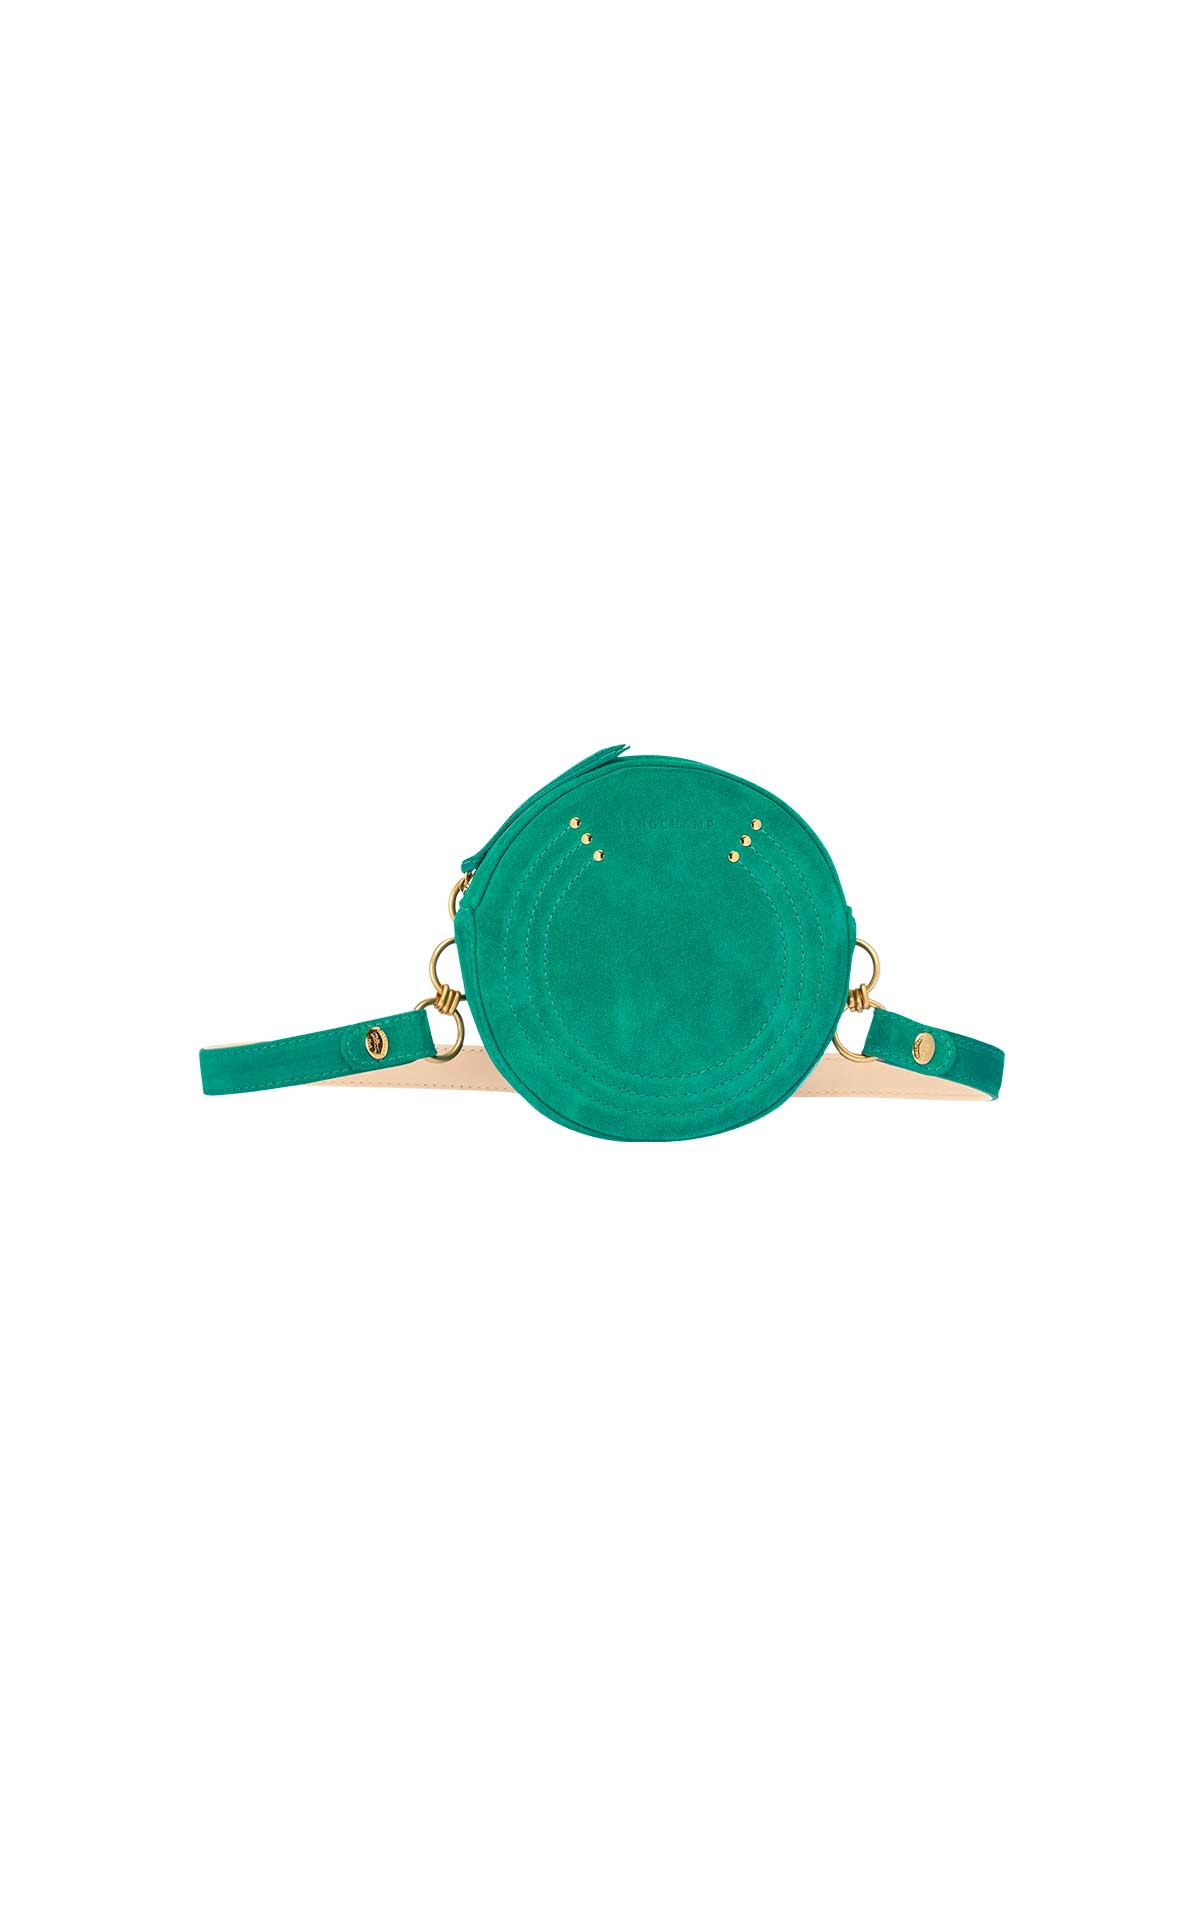 Rounded turquoise bag Longchamp